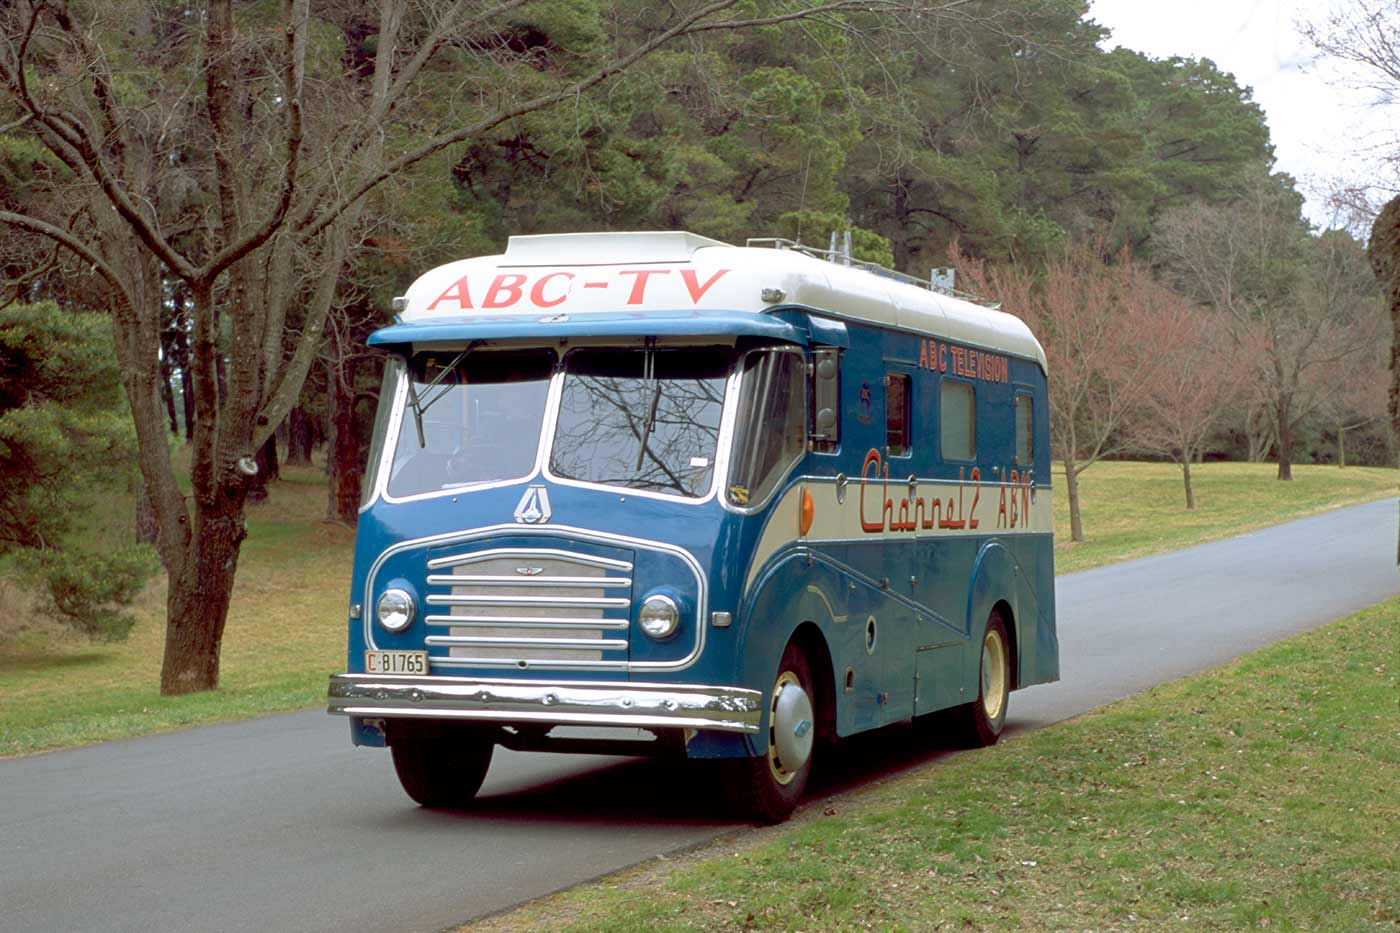 Morris Model FE Pye outside broadcast van used by Australian Broadcasting Corporation Television (ABC-TV). The van is predominantly metallic blue, with a white flash along both sides, and a white roof.